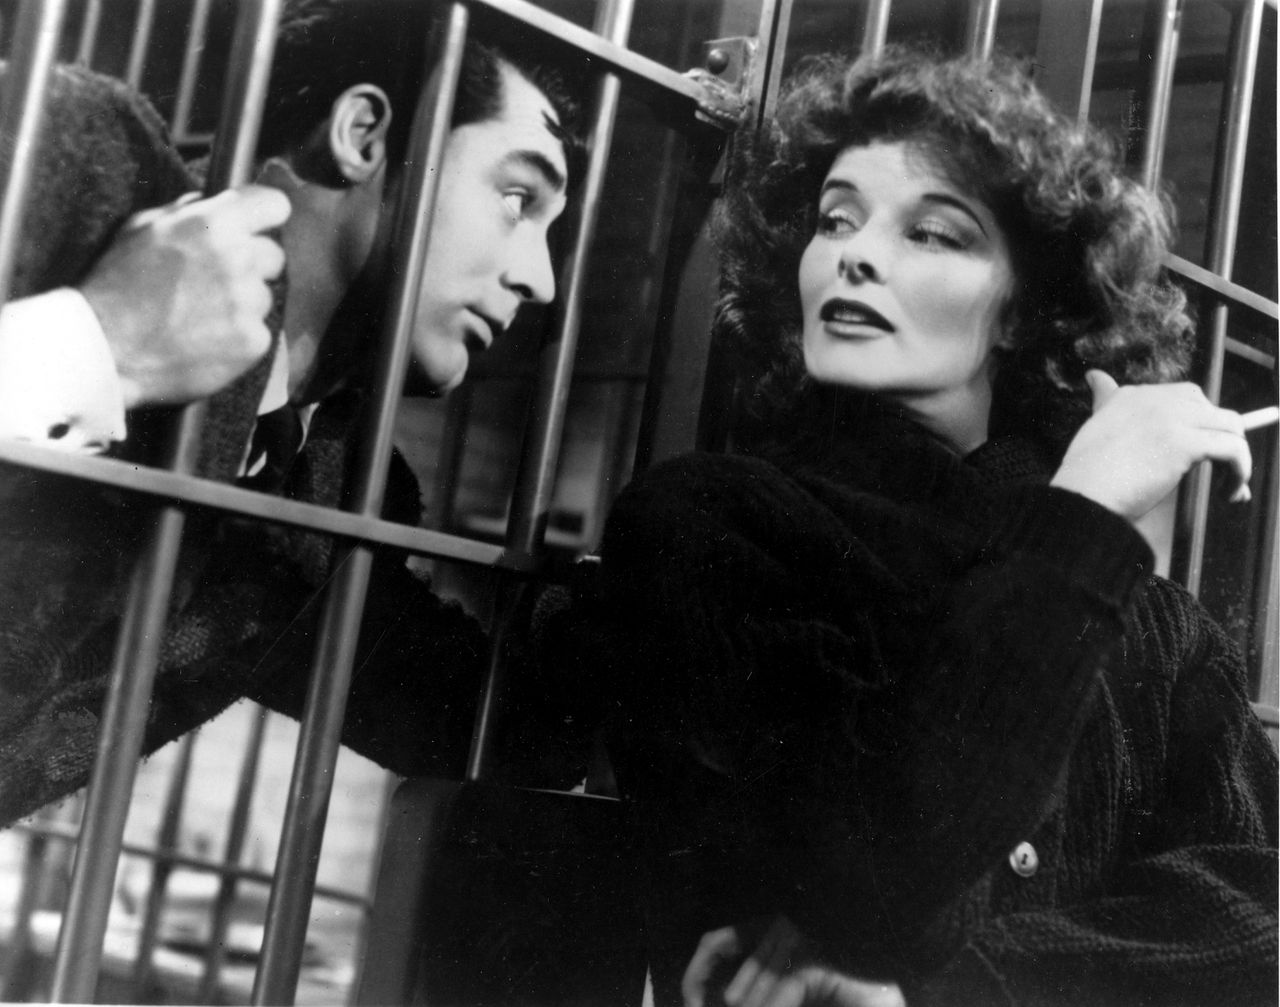 """Actress Katharine Hepburn is shown in character with Cary Grant in a scene from """"Bringing Up Baby"""" in 1938. (AP Photo)"""